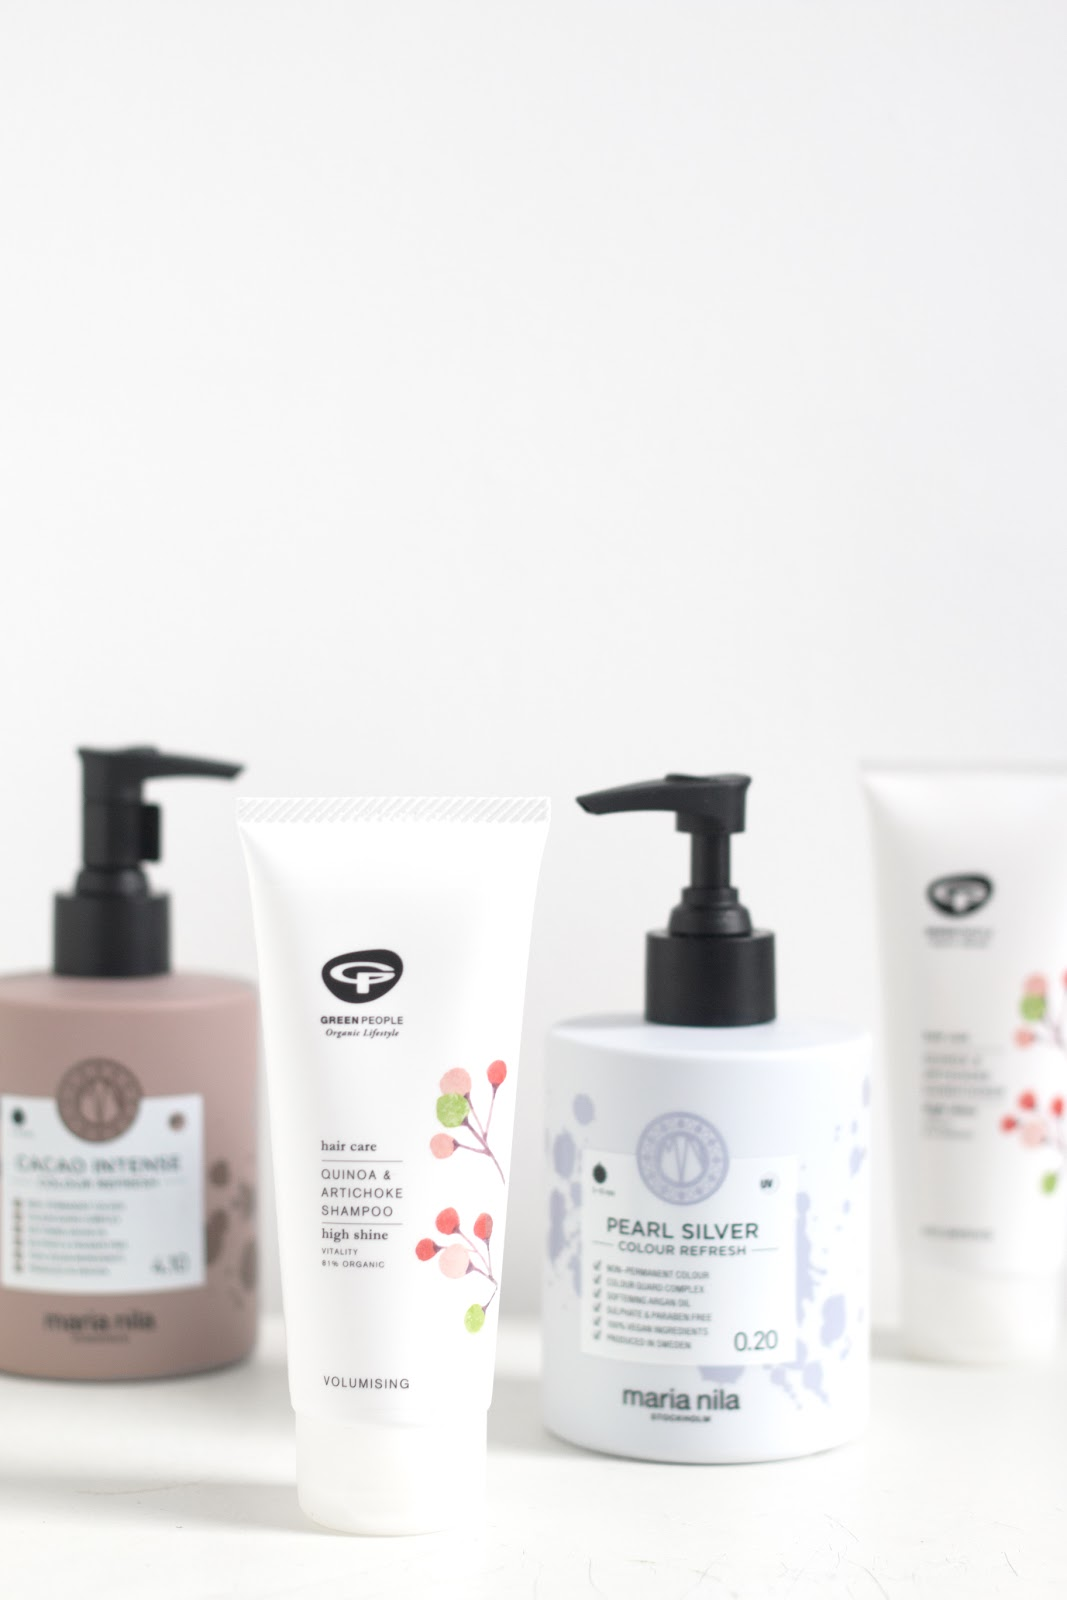 NEW IN HAIRCARE FOR AUTUMN